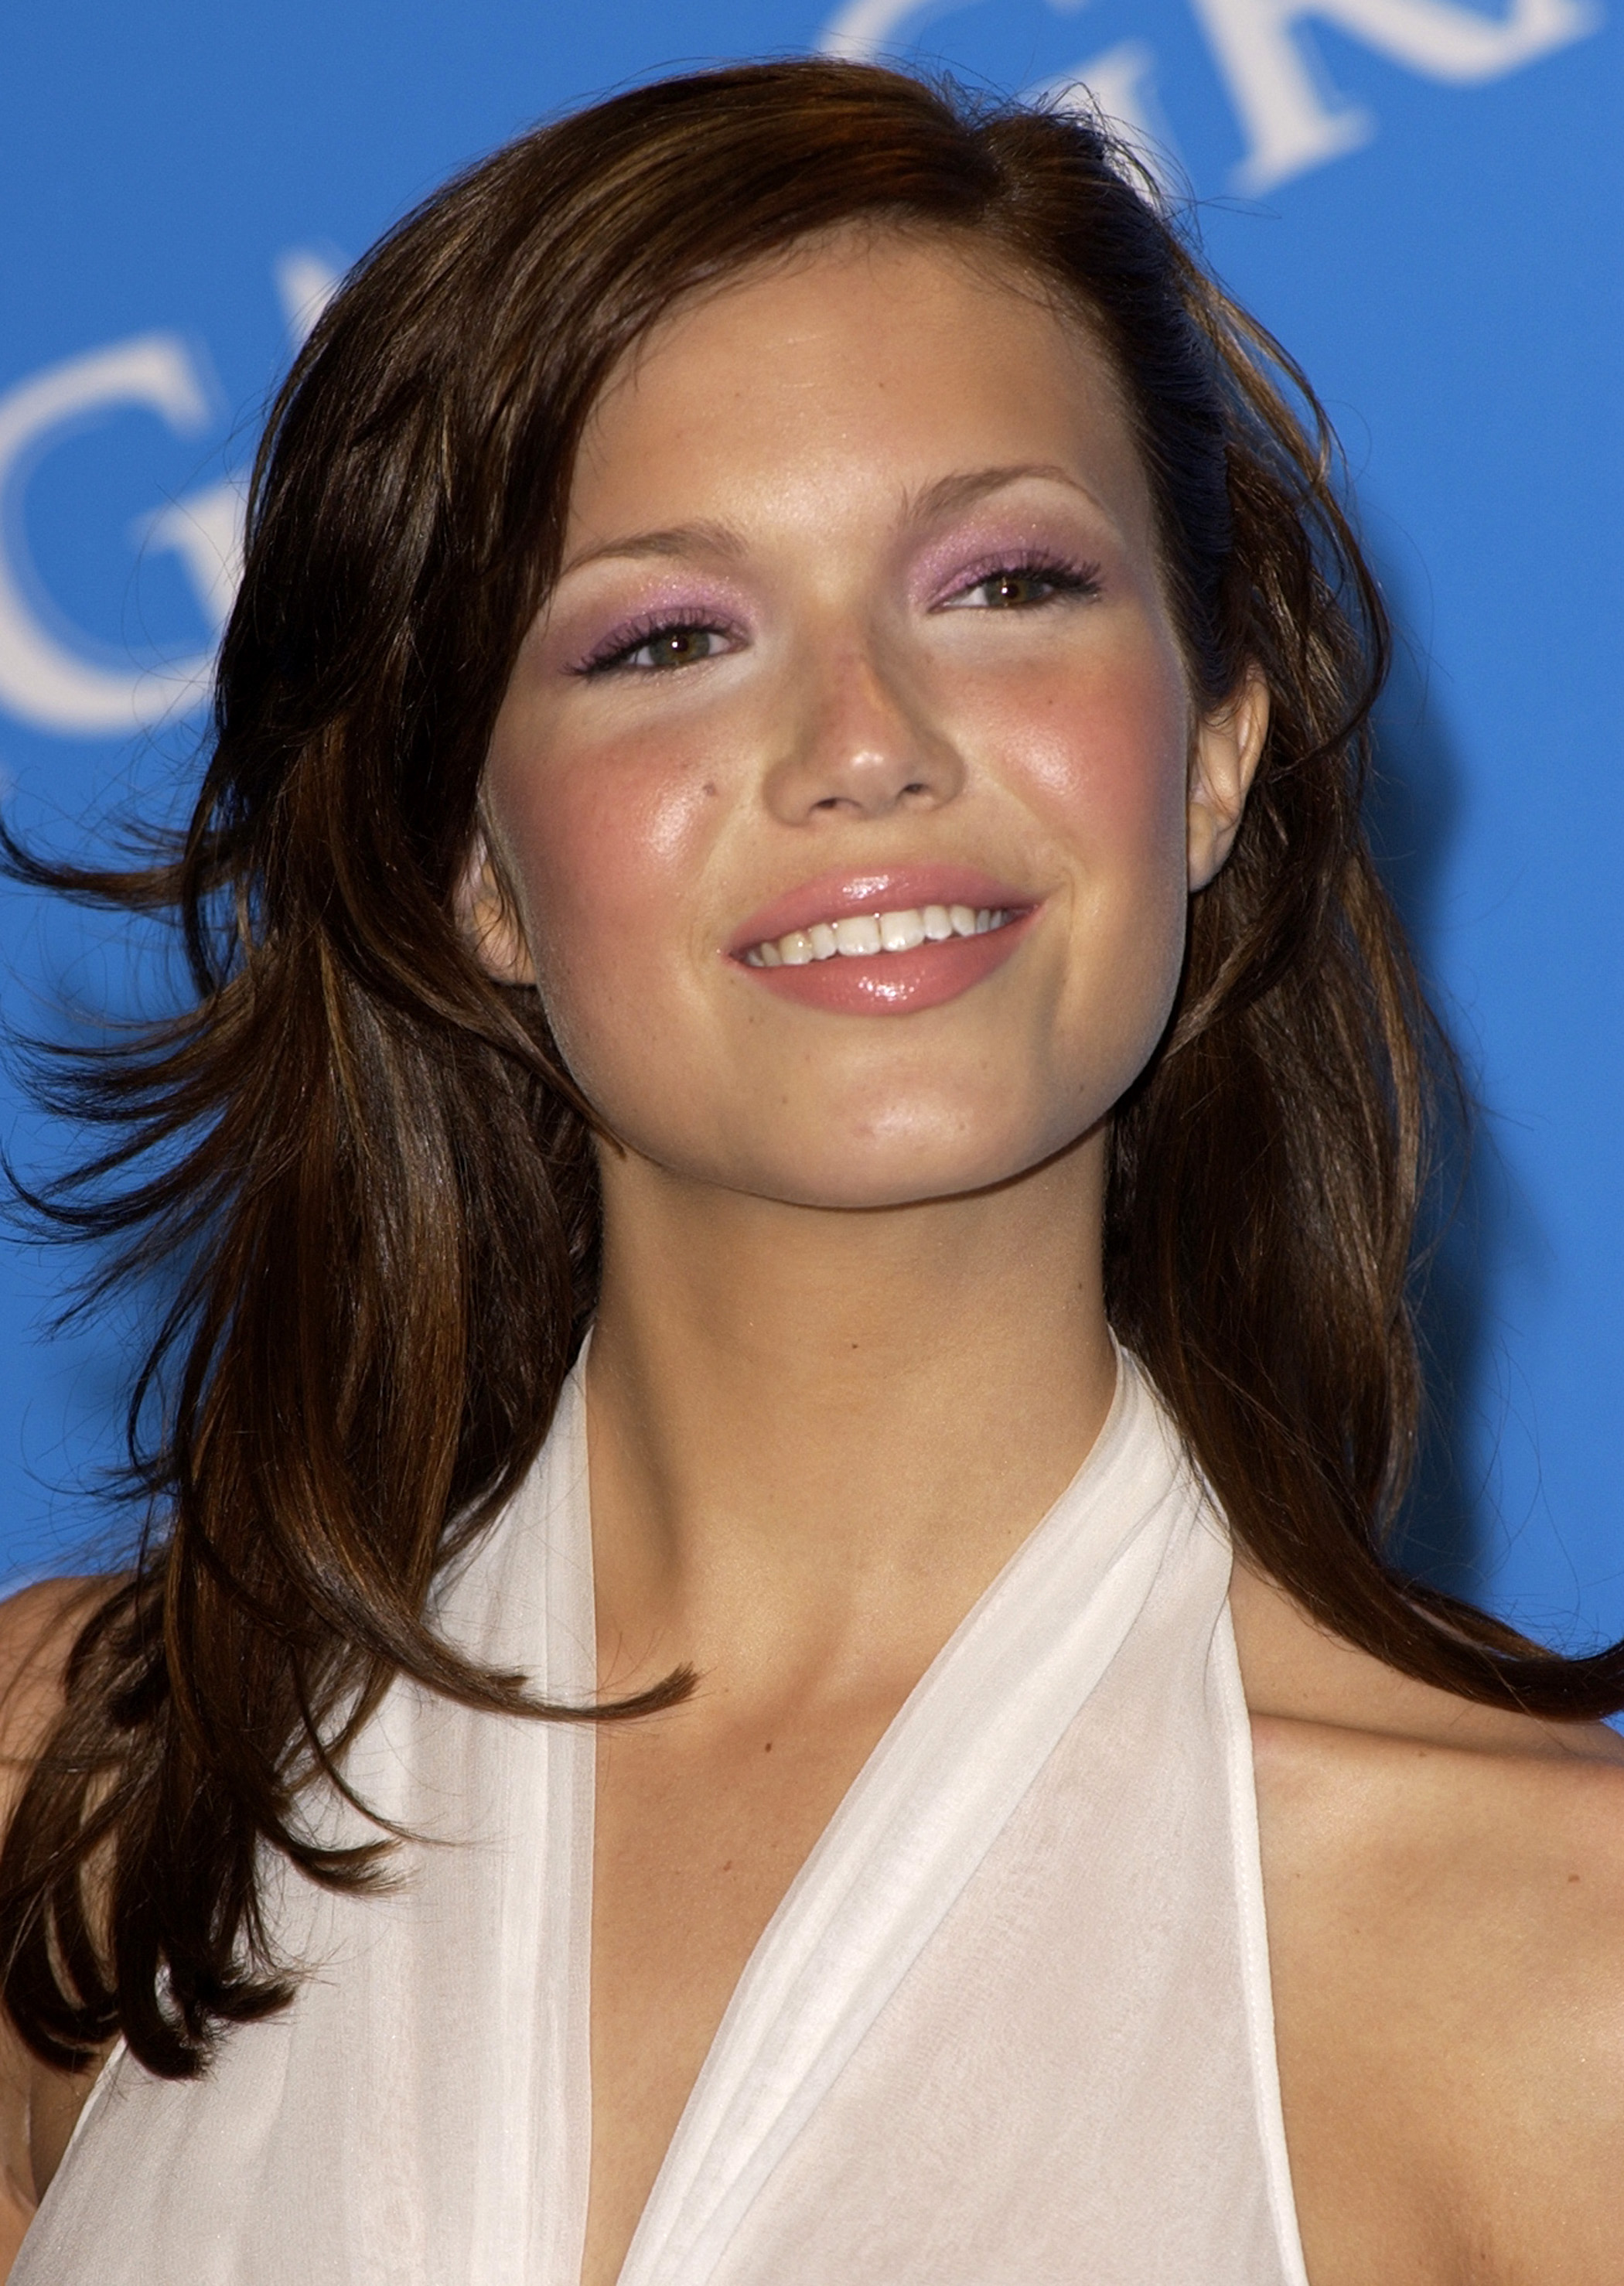 17 Adorable Vintage Photos Of Mandy Moore The Pop Star